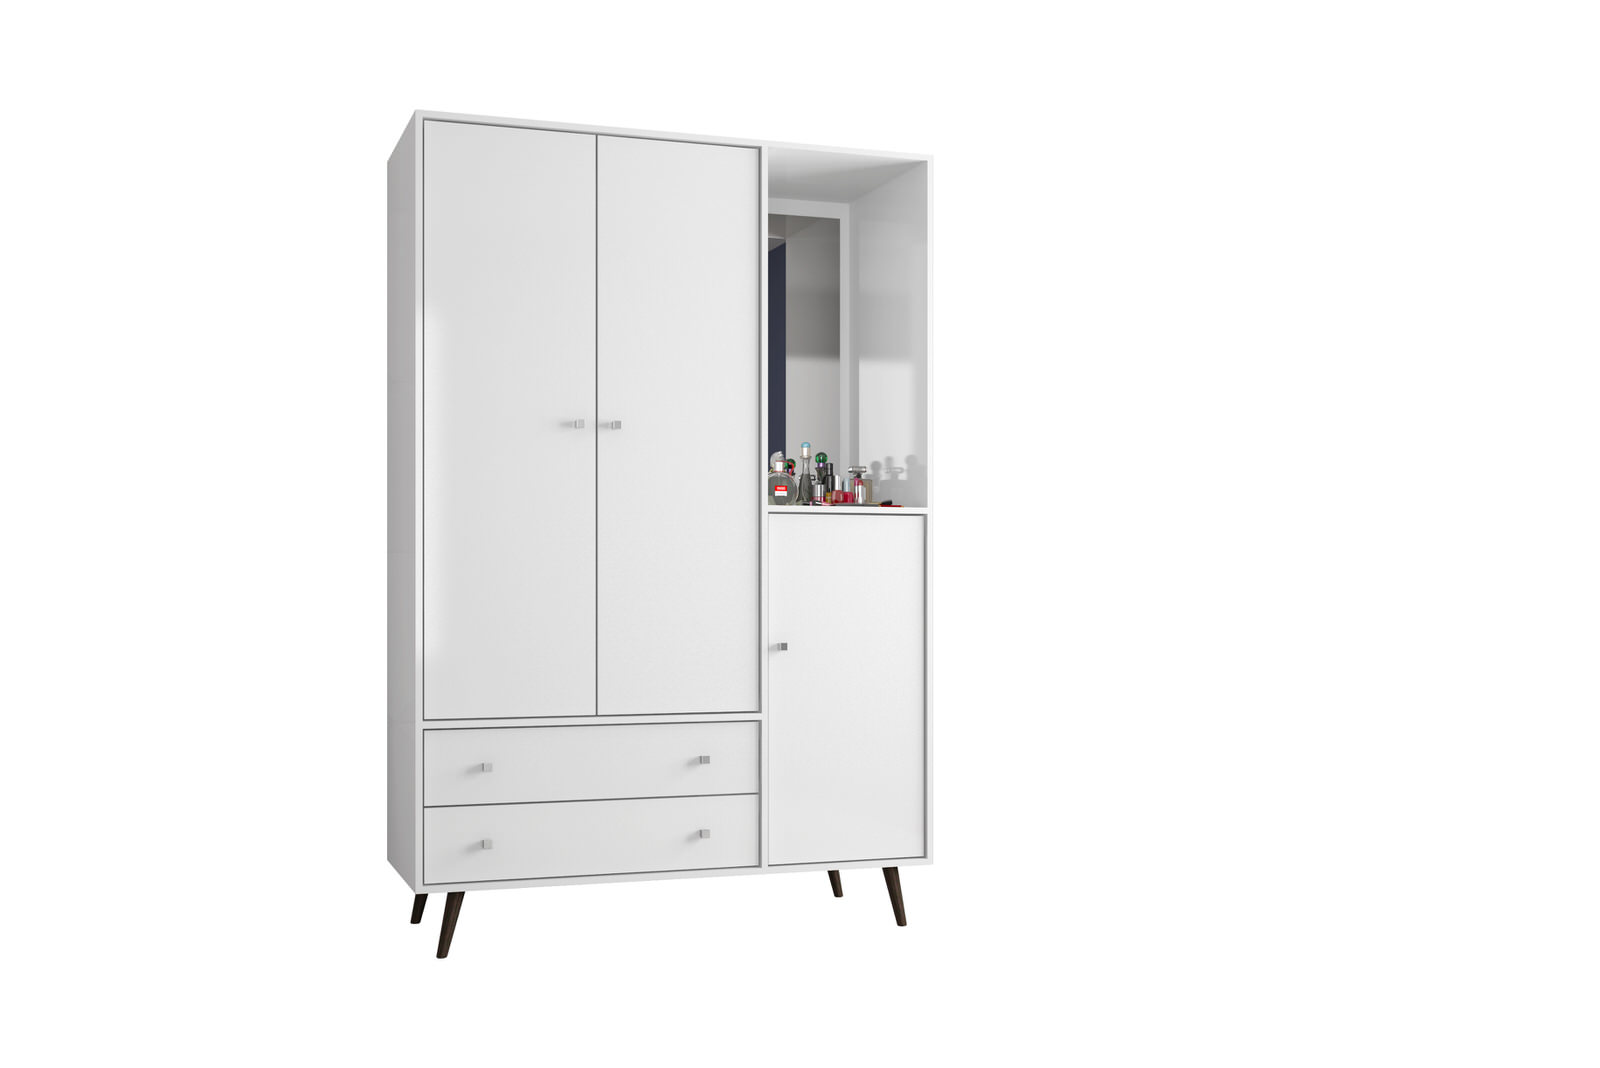 Liberty White 47 83 Inch Mid Century Modern Armoire W Mirror 4 Shelves 2 Drawers Hanging Rod By Manhattan Comfort